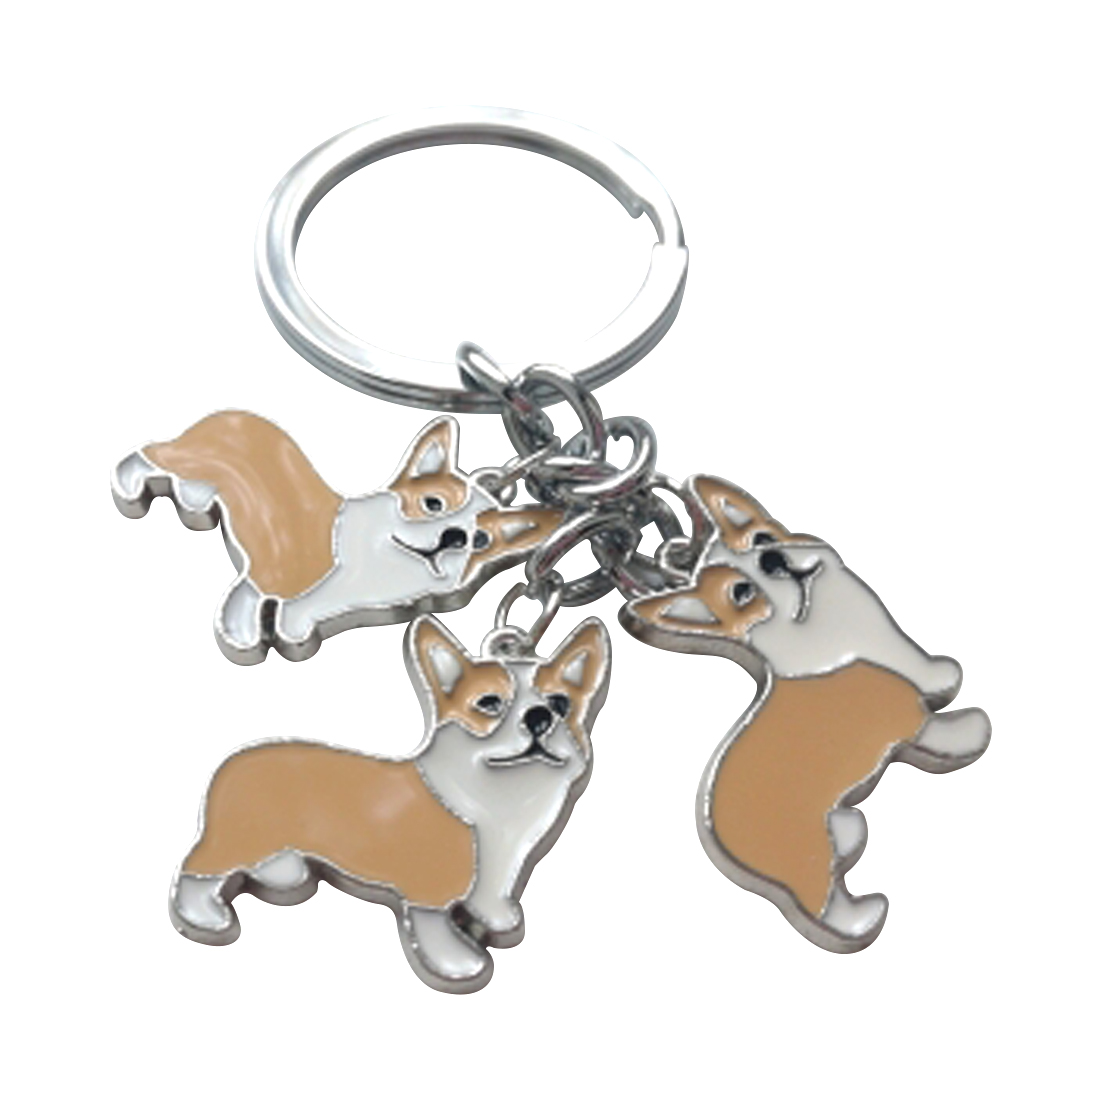 Automobiles & Motorcycles Interior Accessories Popular Brand Metal Pet Key Chain Welsh Corgi Dogs Key Ring Bag Charm Lovely Keychain Car Keyring Gift Women Jewelry Soft And Light